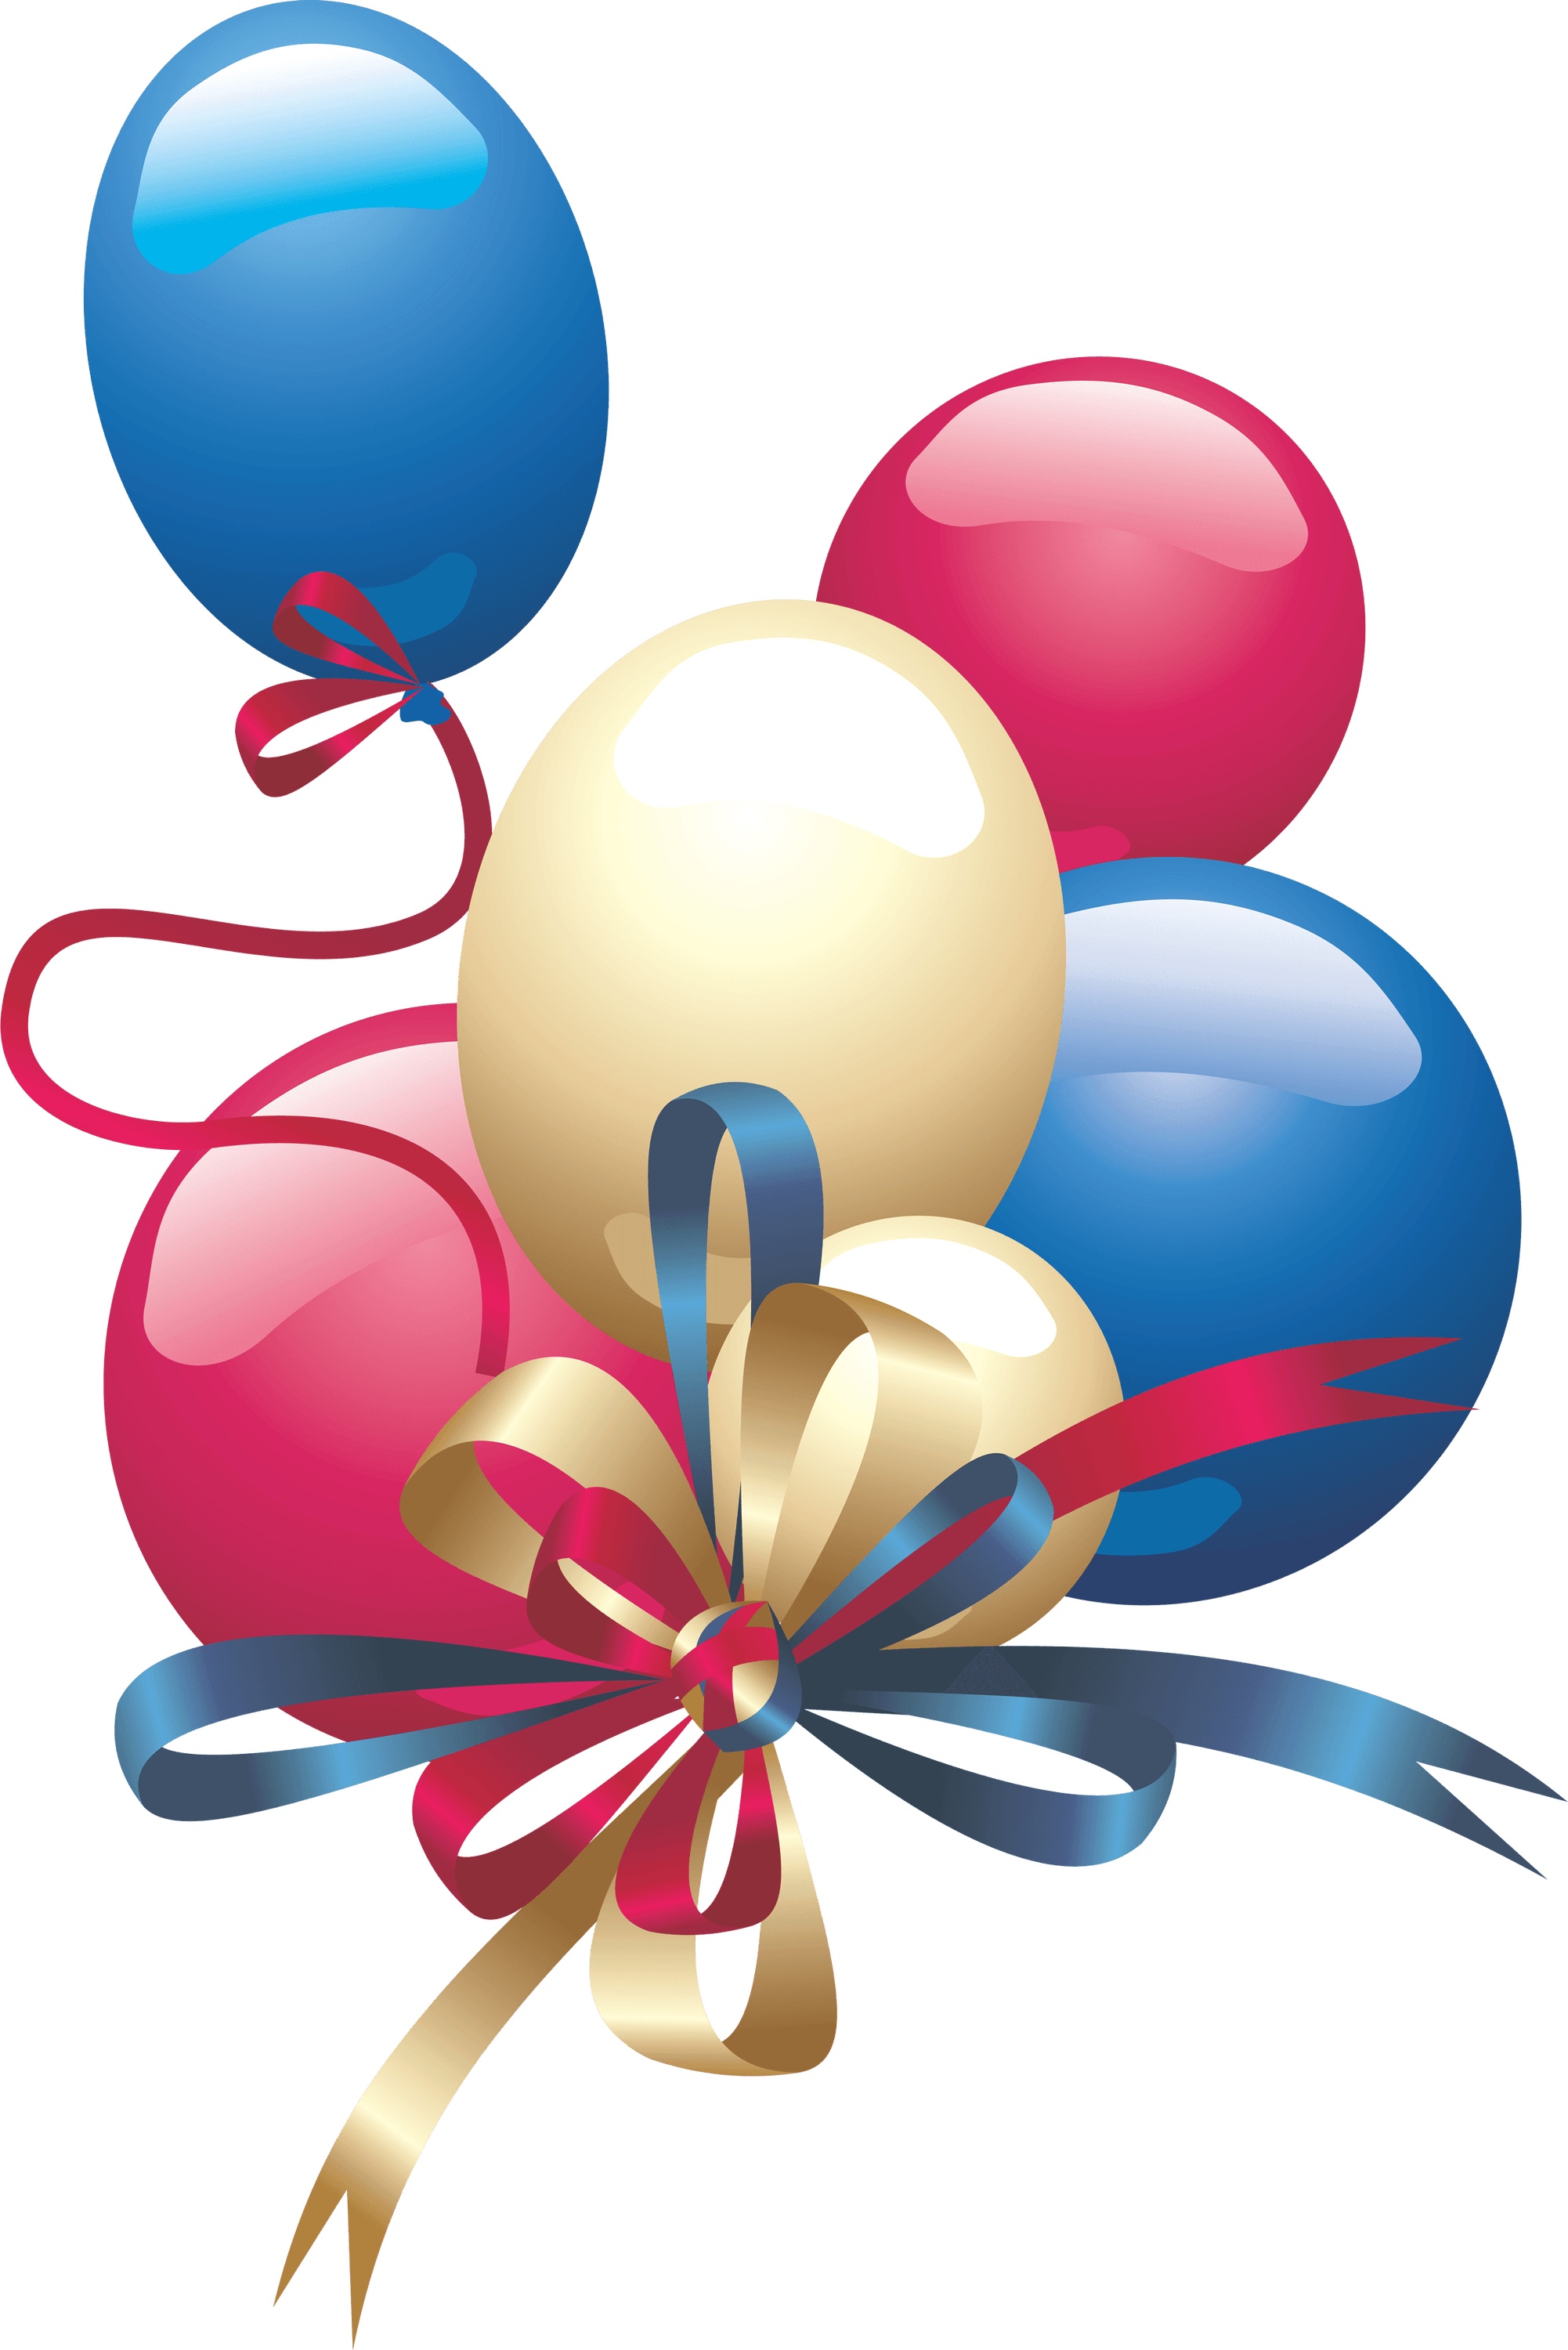 2002x3000 Party Balloon Transparent Png